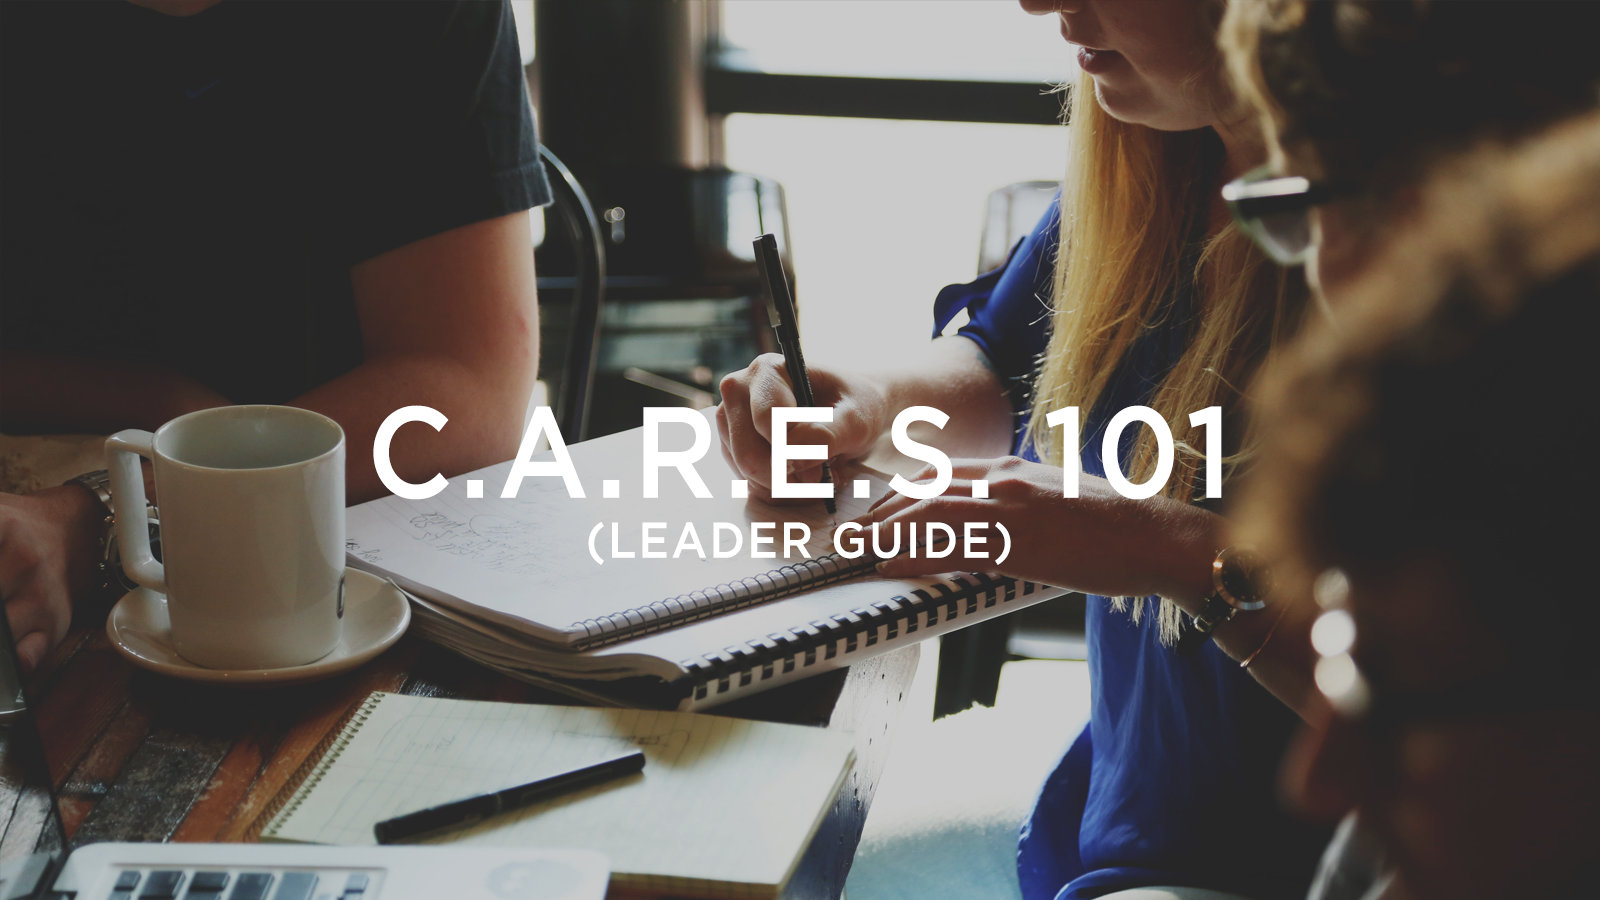 CARES101LeaderGuide.png